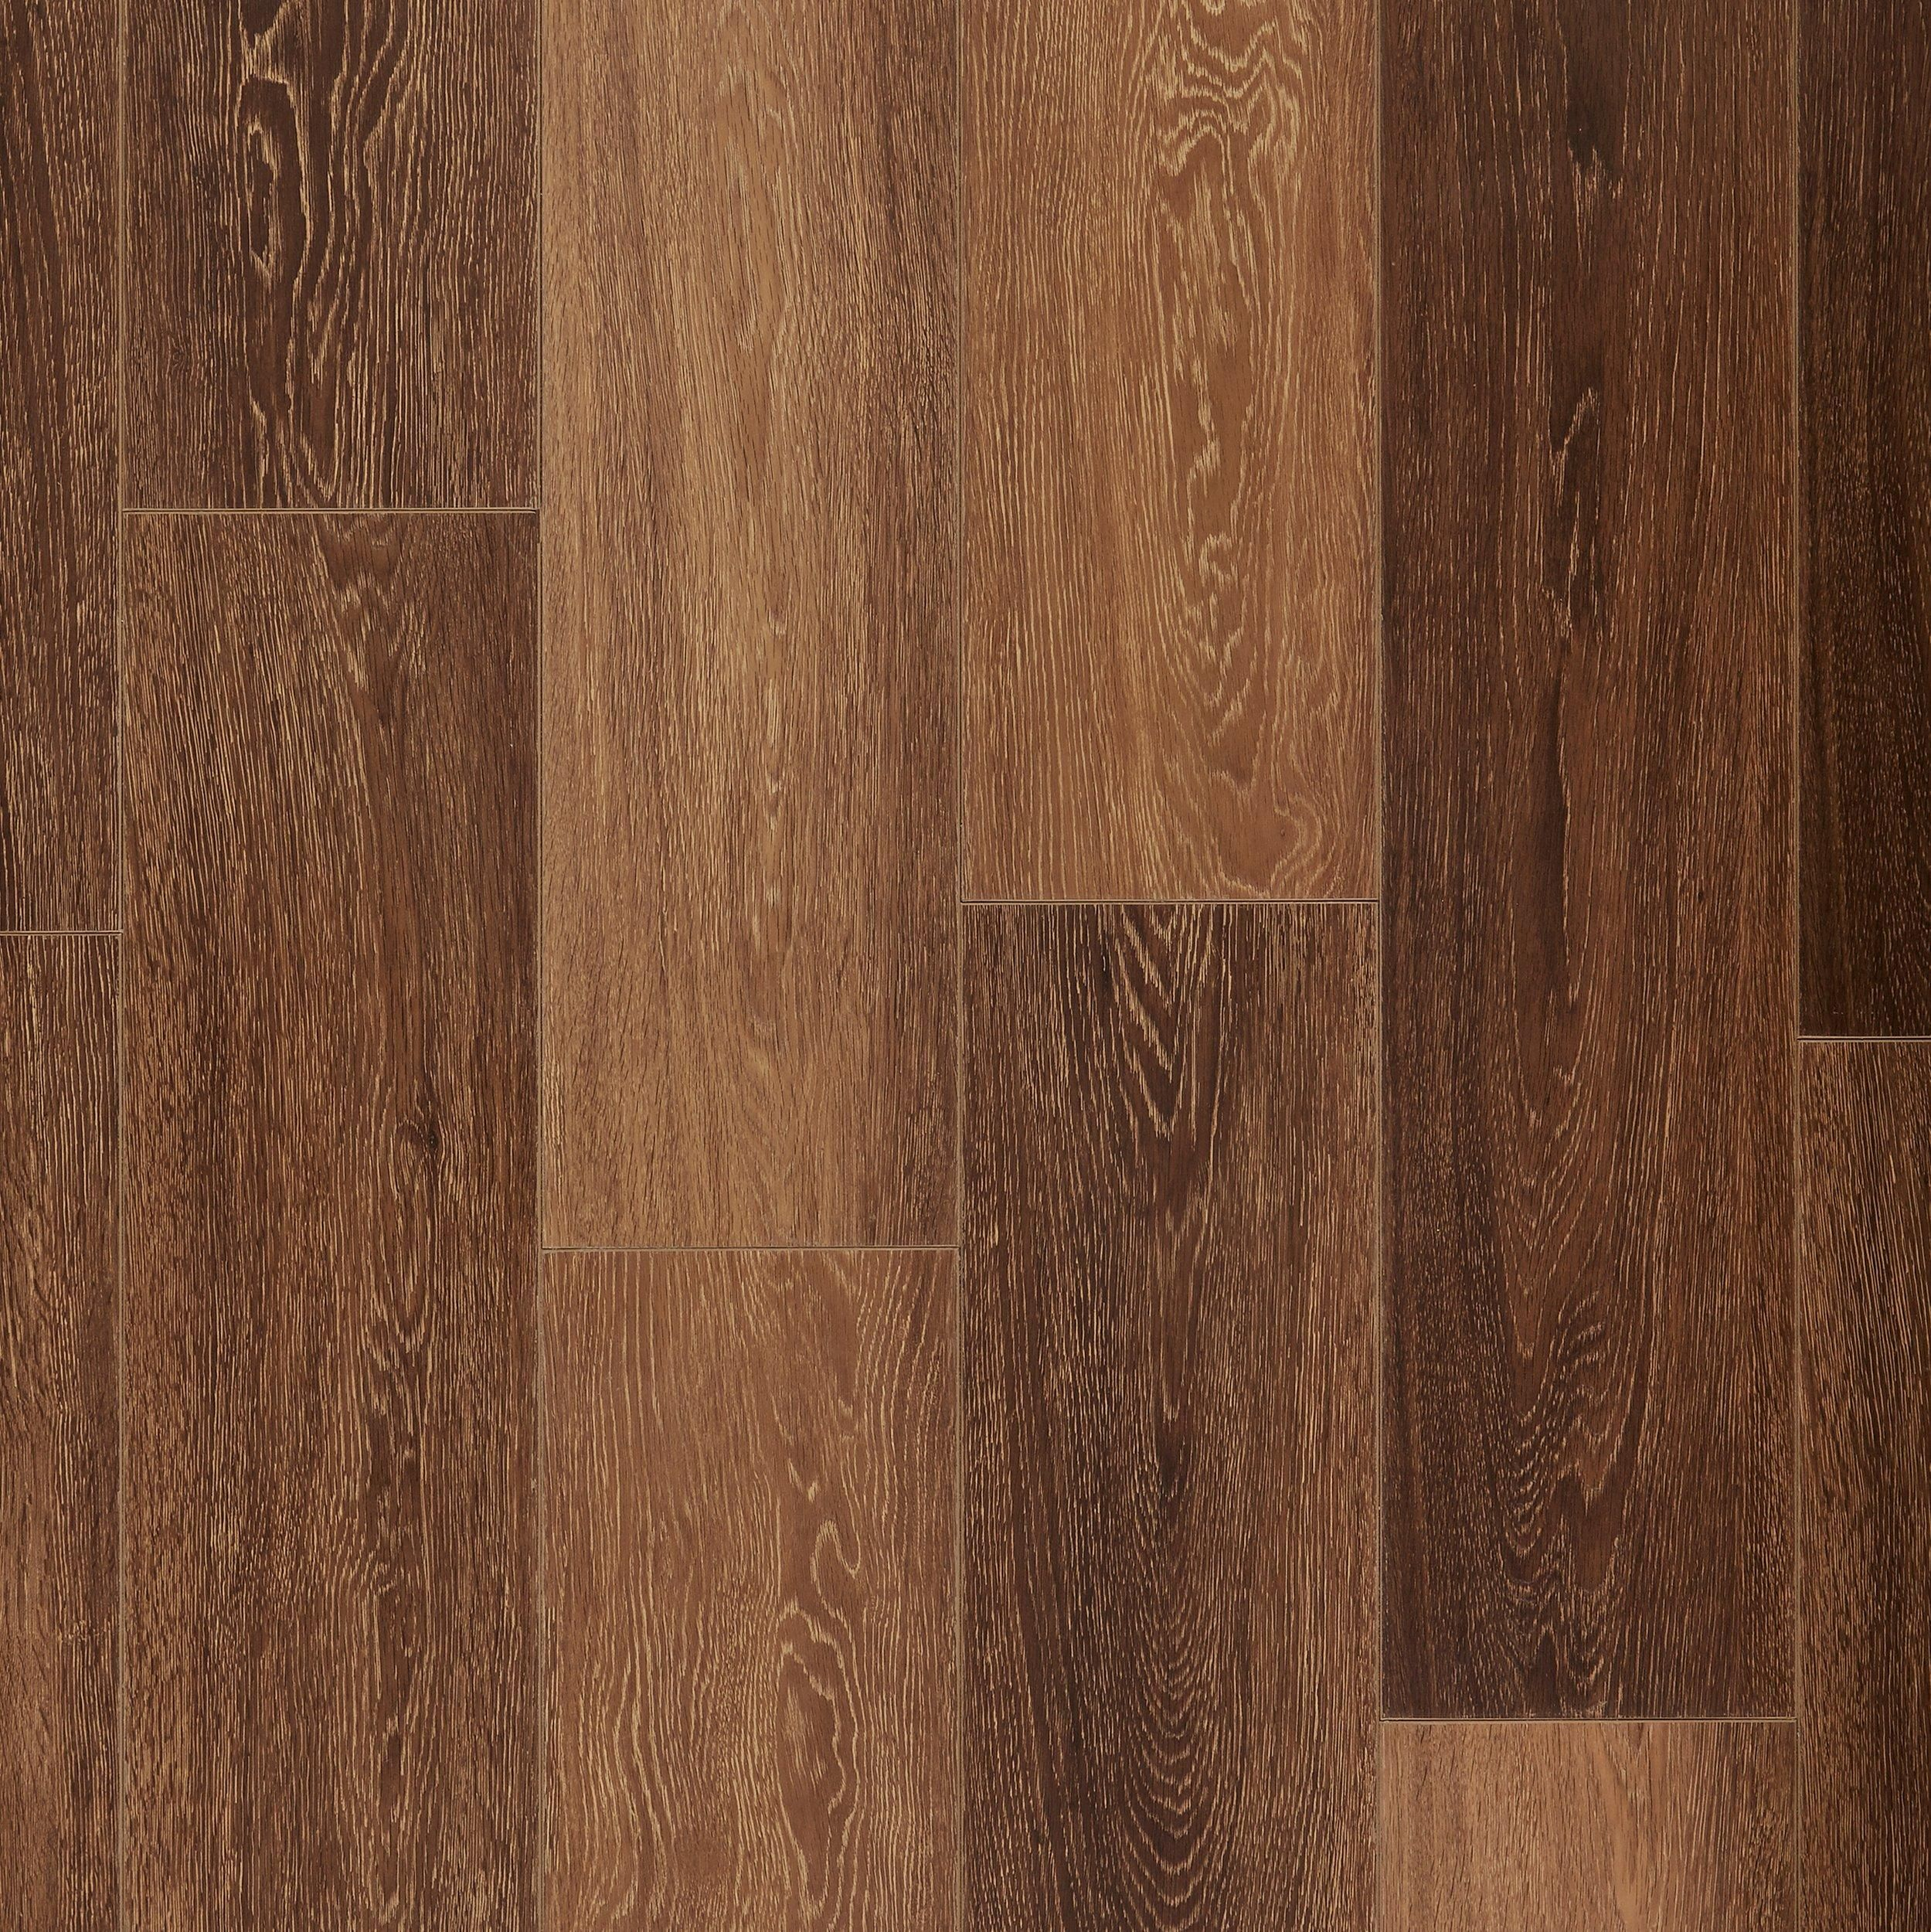 Home Depot In 2020 Home Decorators Collection Staining Wood Oak Laminate